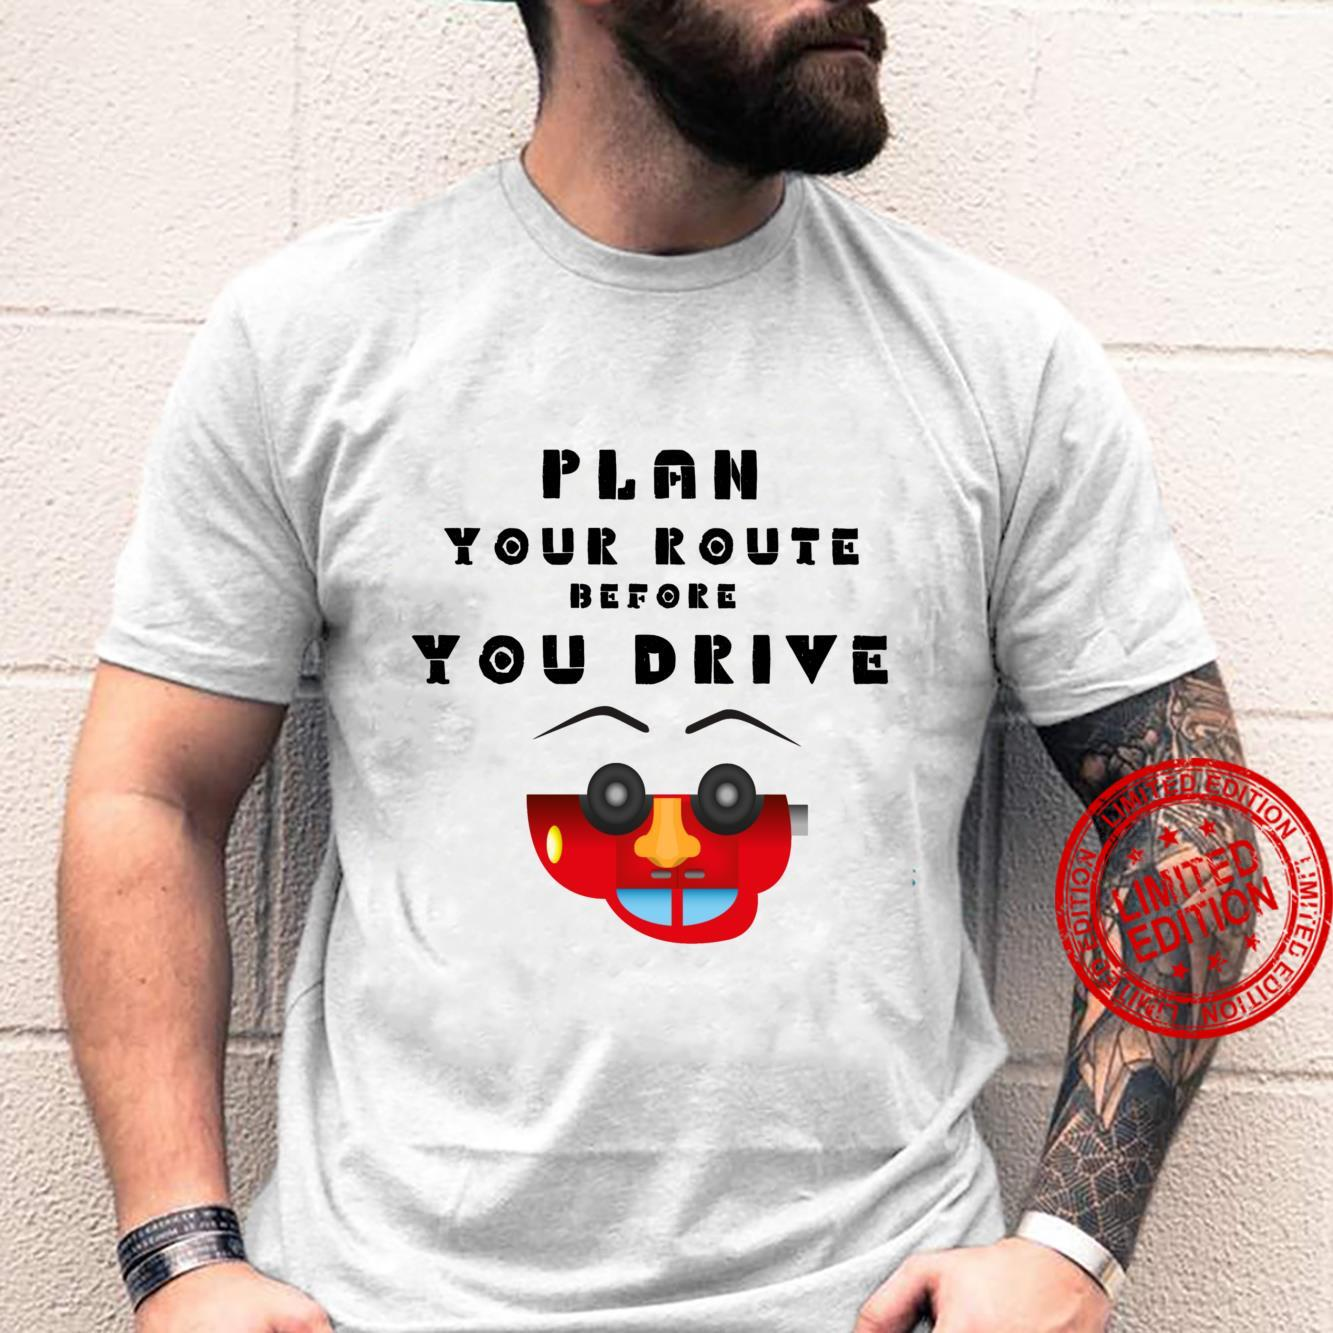 Plan Your Route Before You Drive Shirt